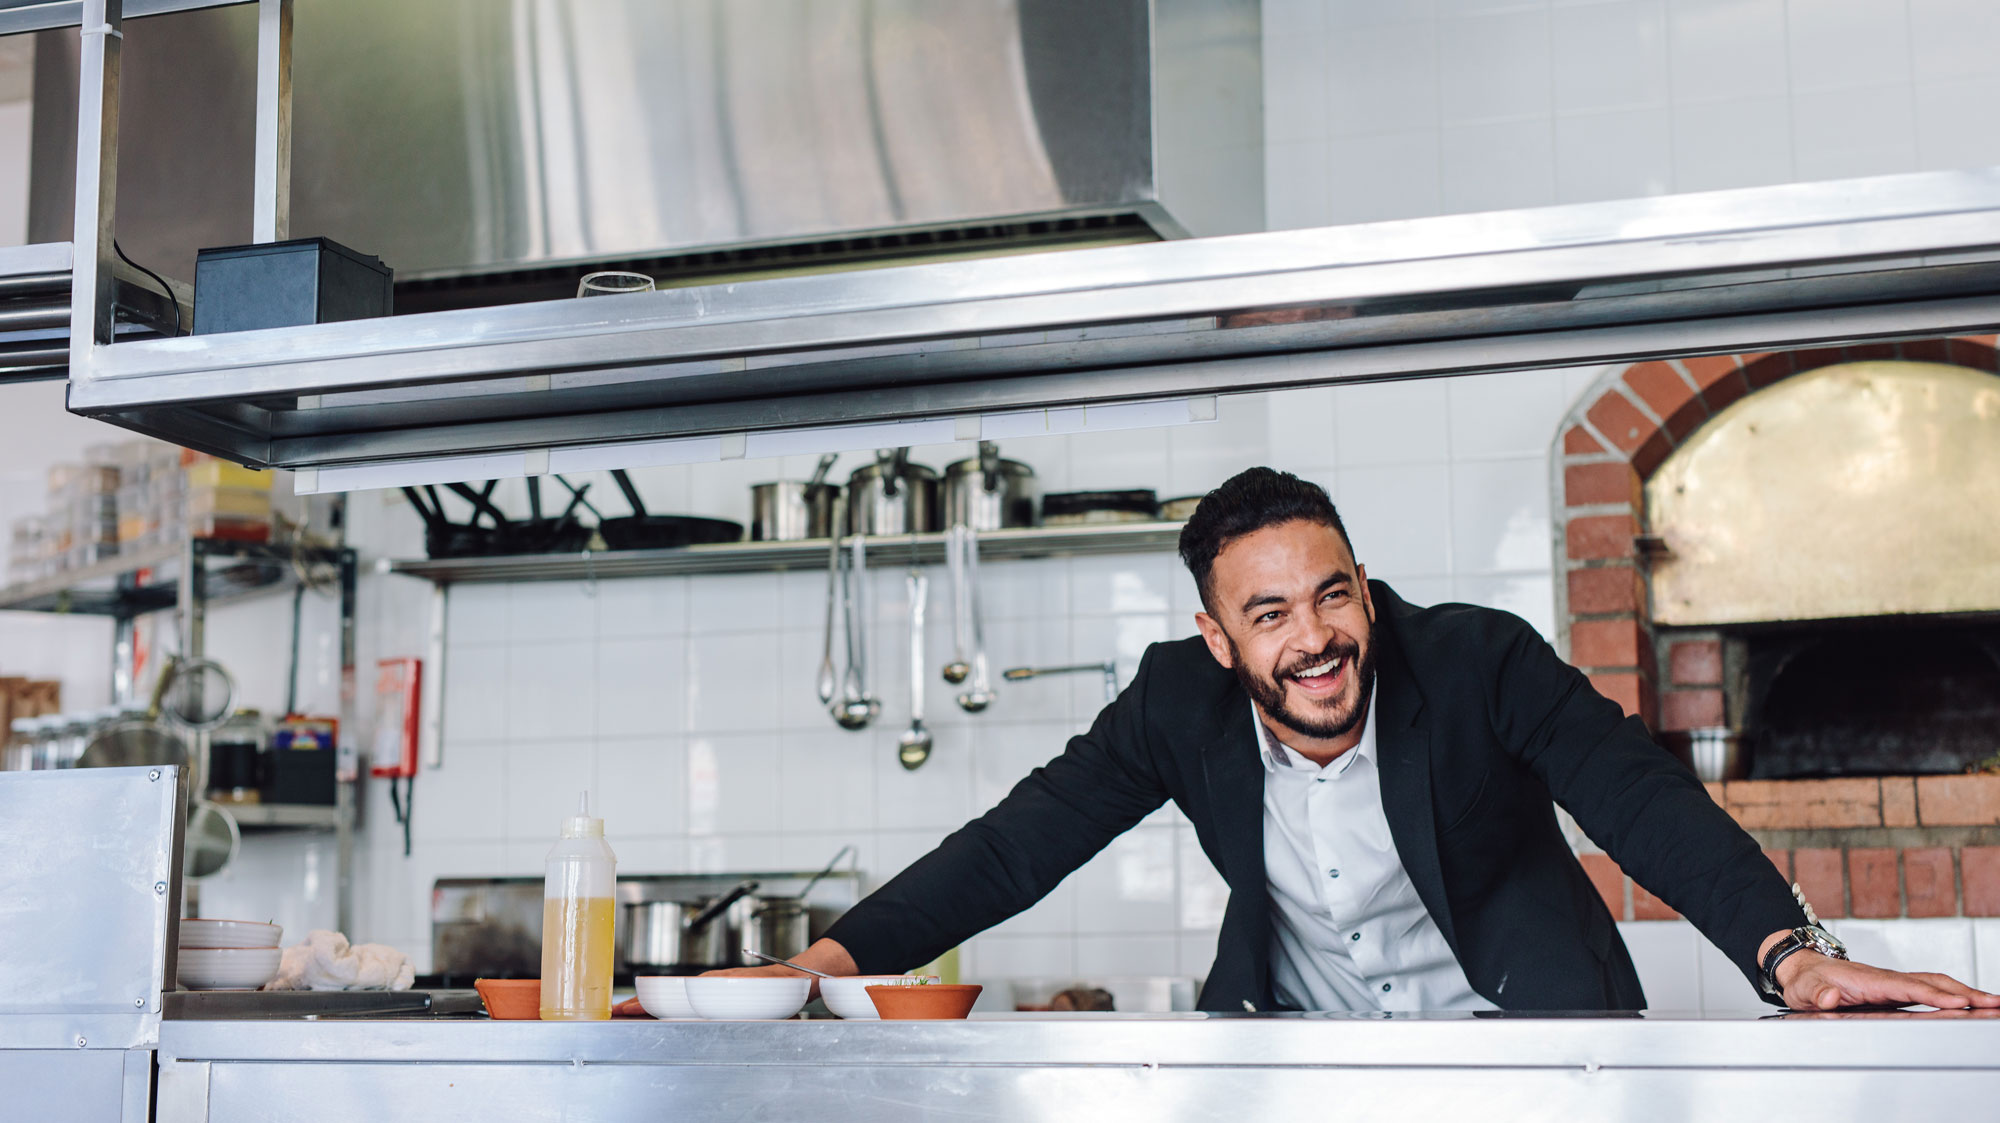 Man in kitchen smiling